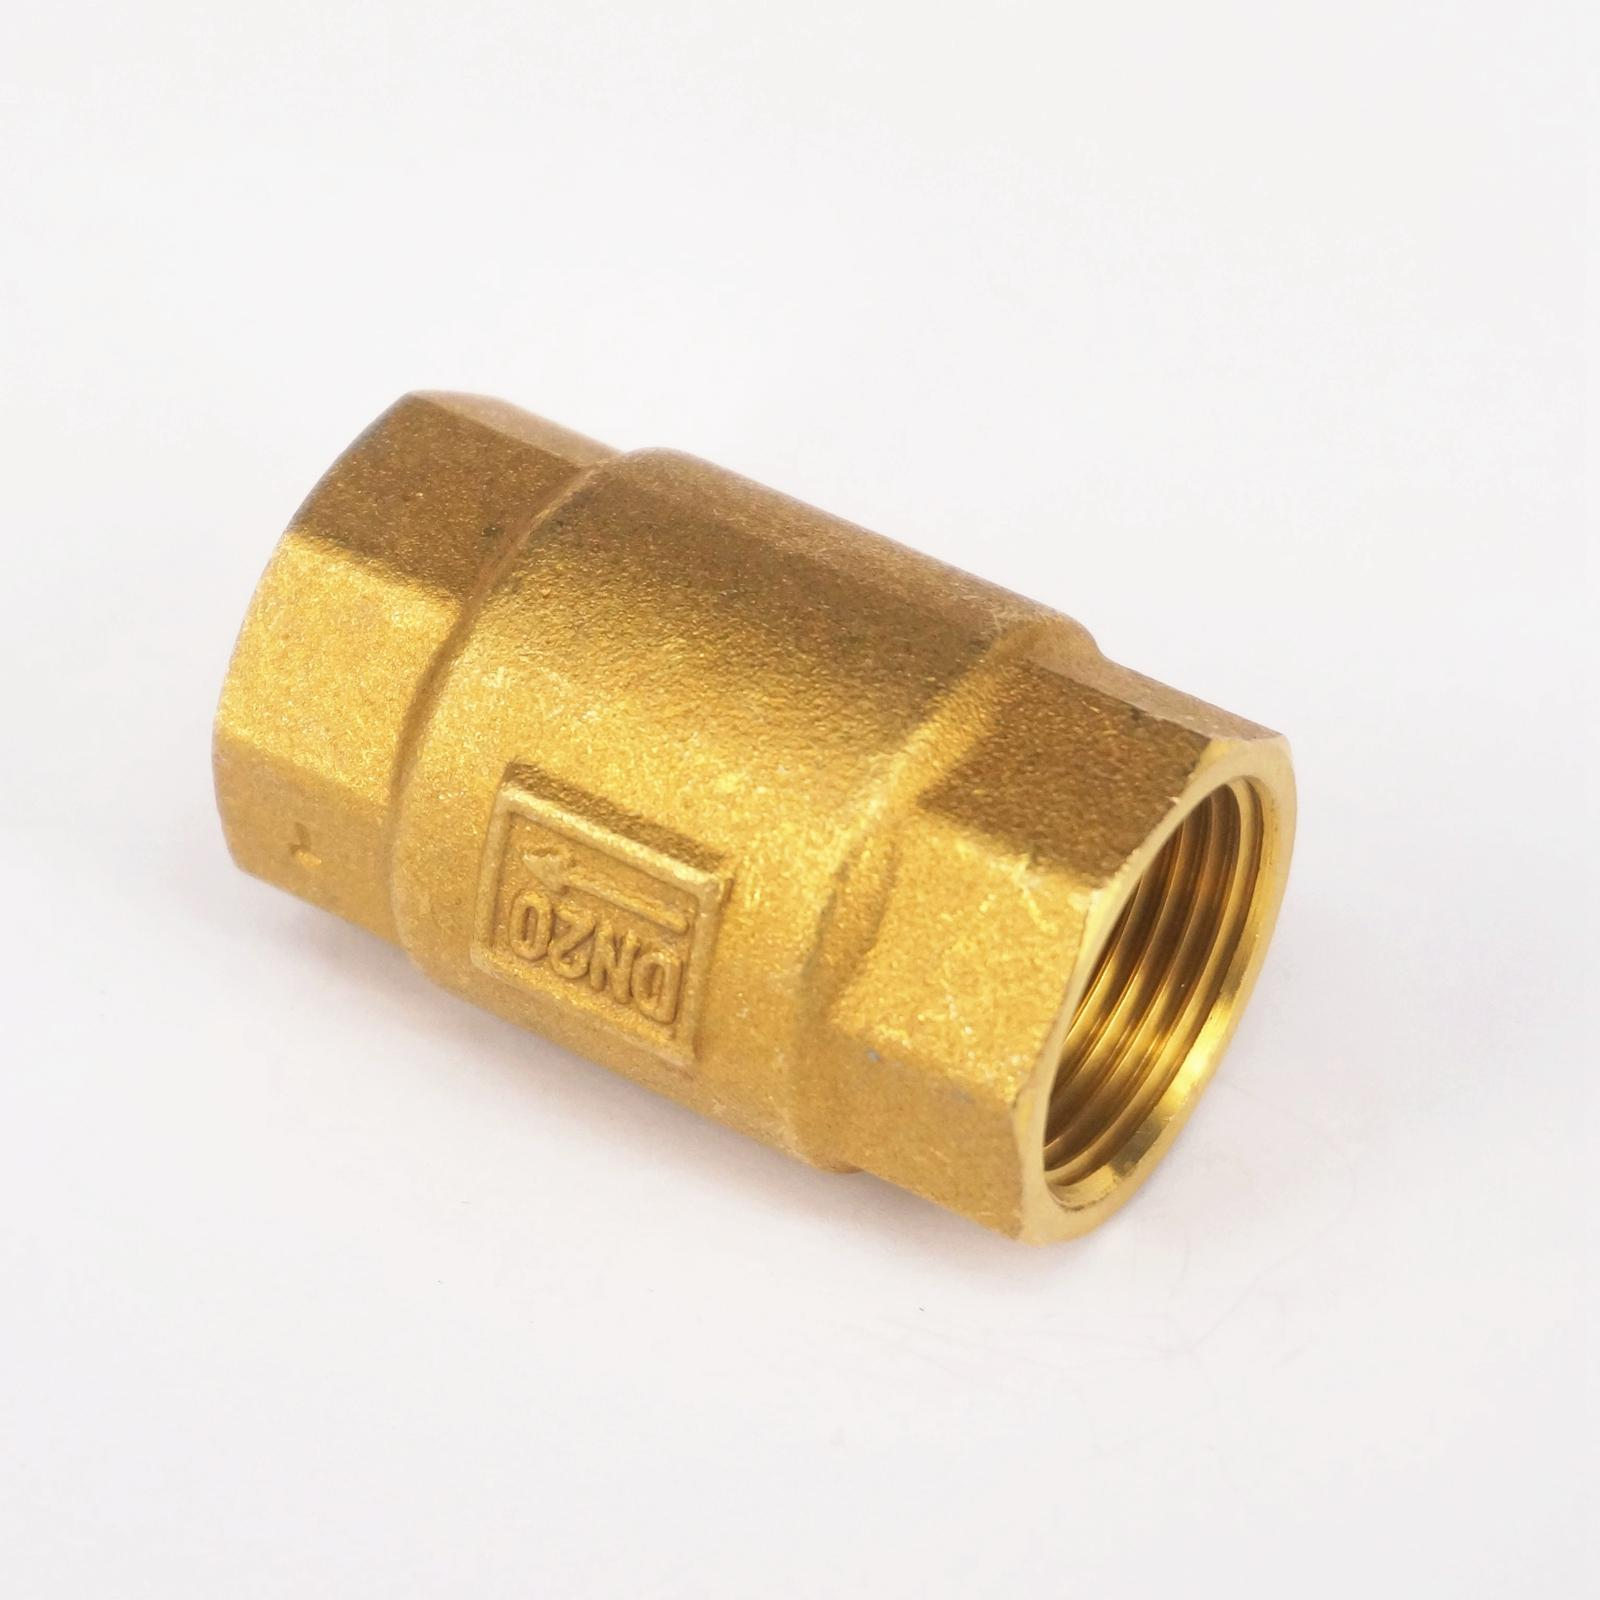 Brass check valve In-Line Spring Non Return 3/4 BSP female to 3/4 BSP female Threaded for water pipe Plumbing vertical type 1 2 pt female threaded brass tone in line check valve